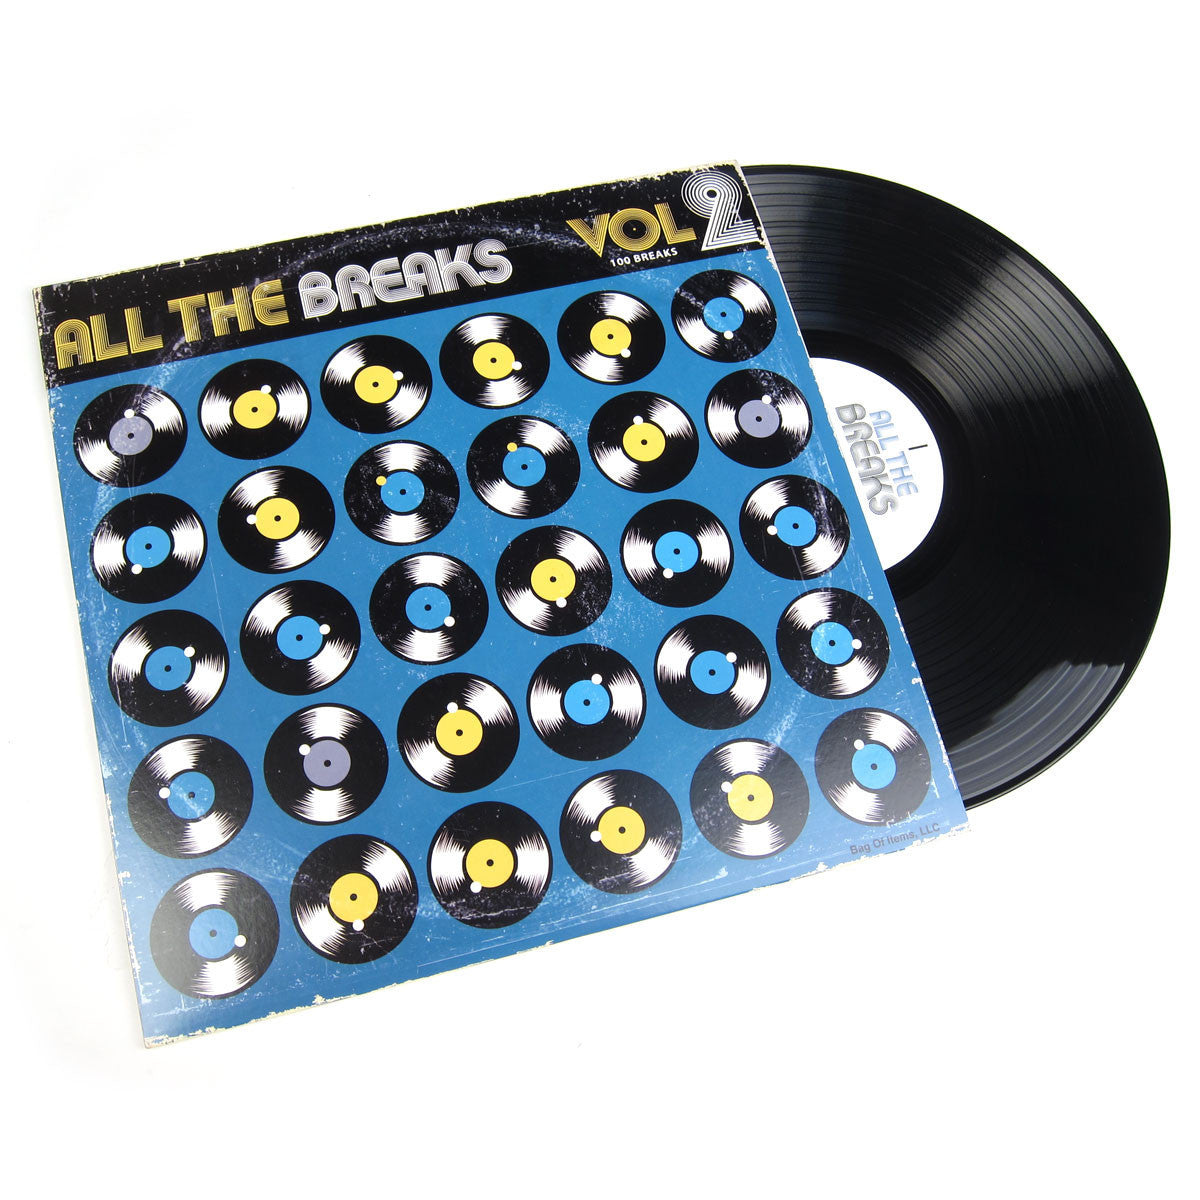 All The Breaks:  Vol. 2 Vinyl LP